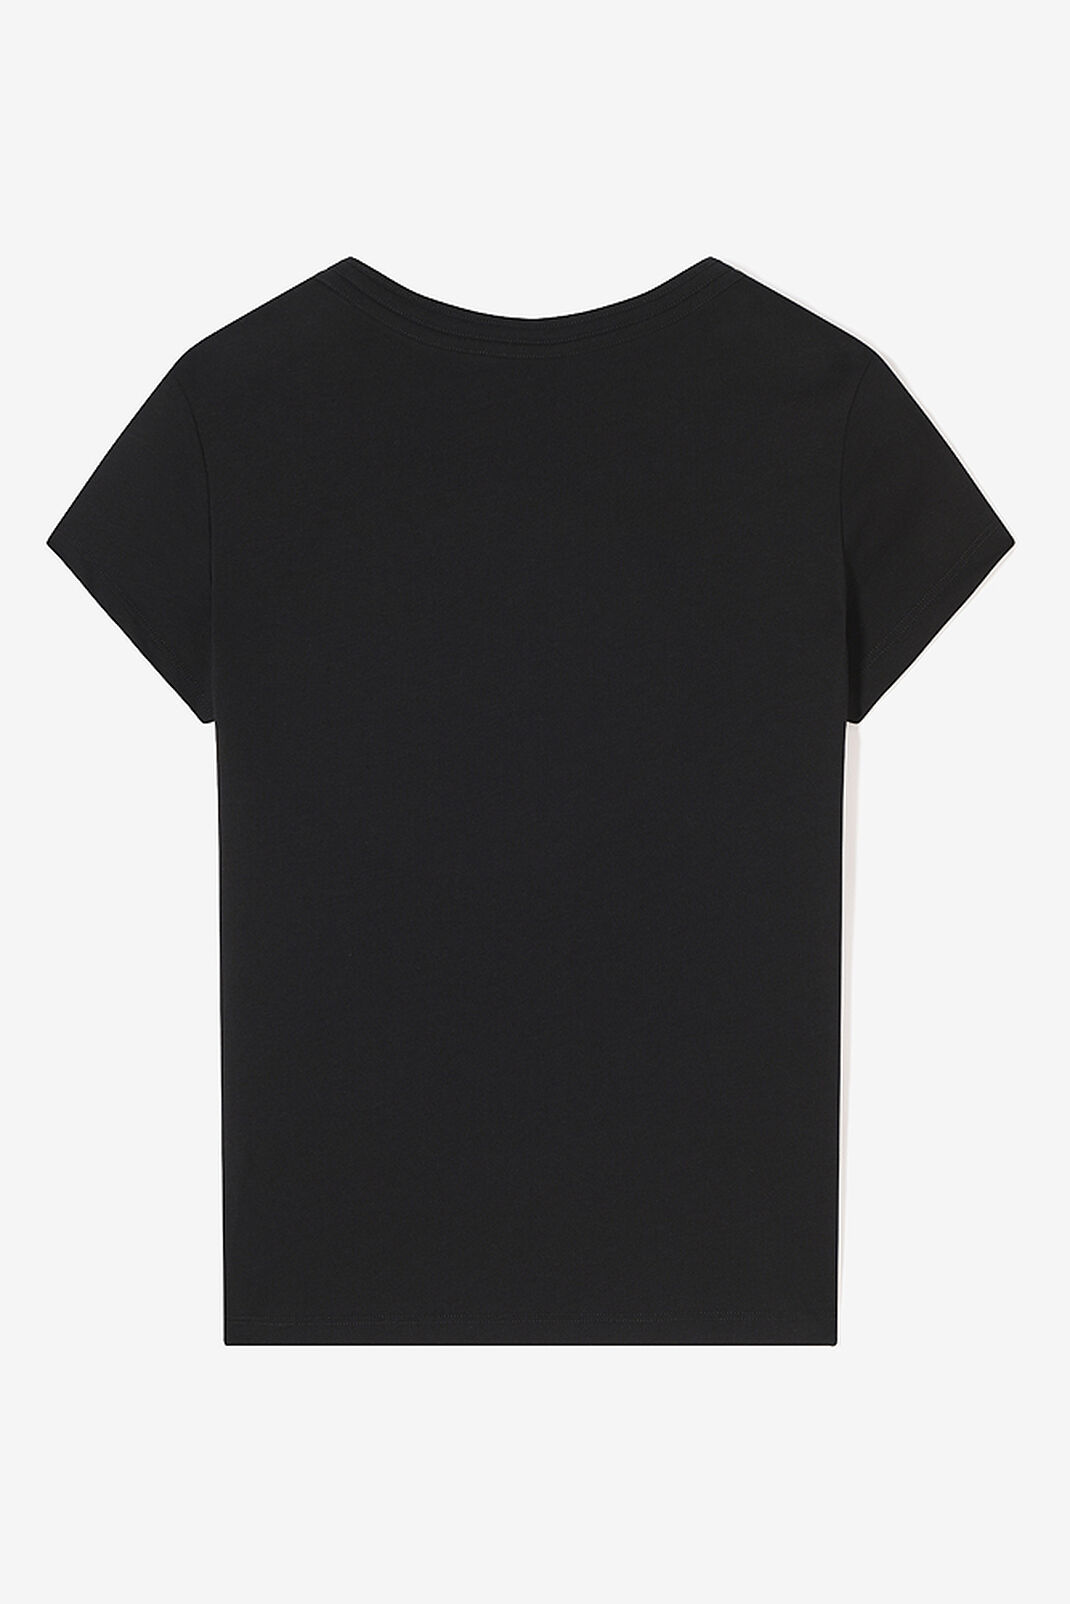 BLACK KENZO Essentials  t-shirt for women